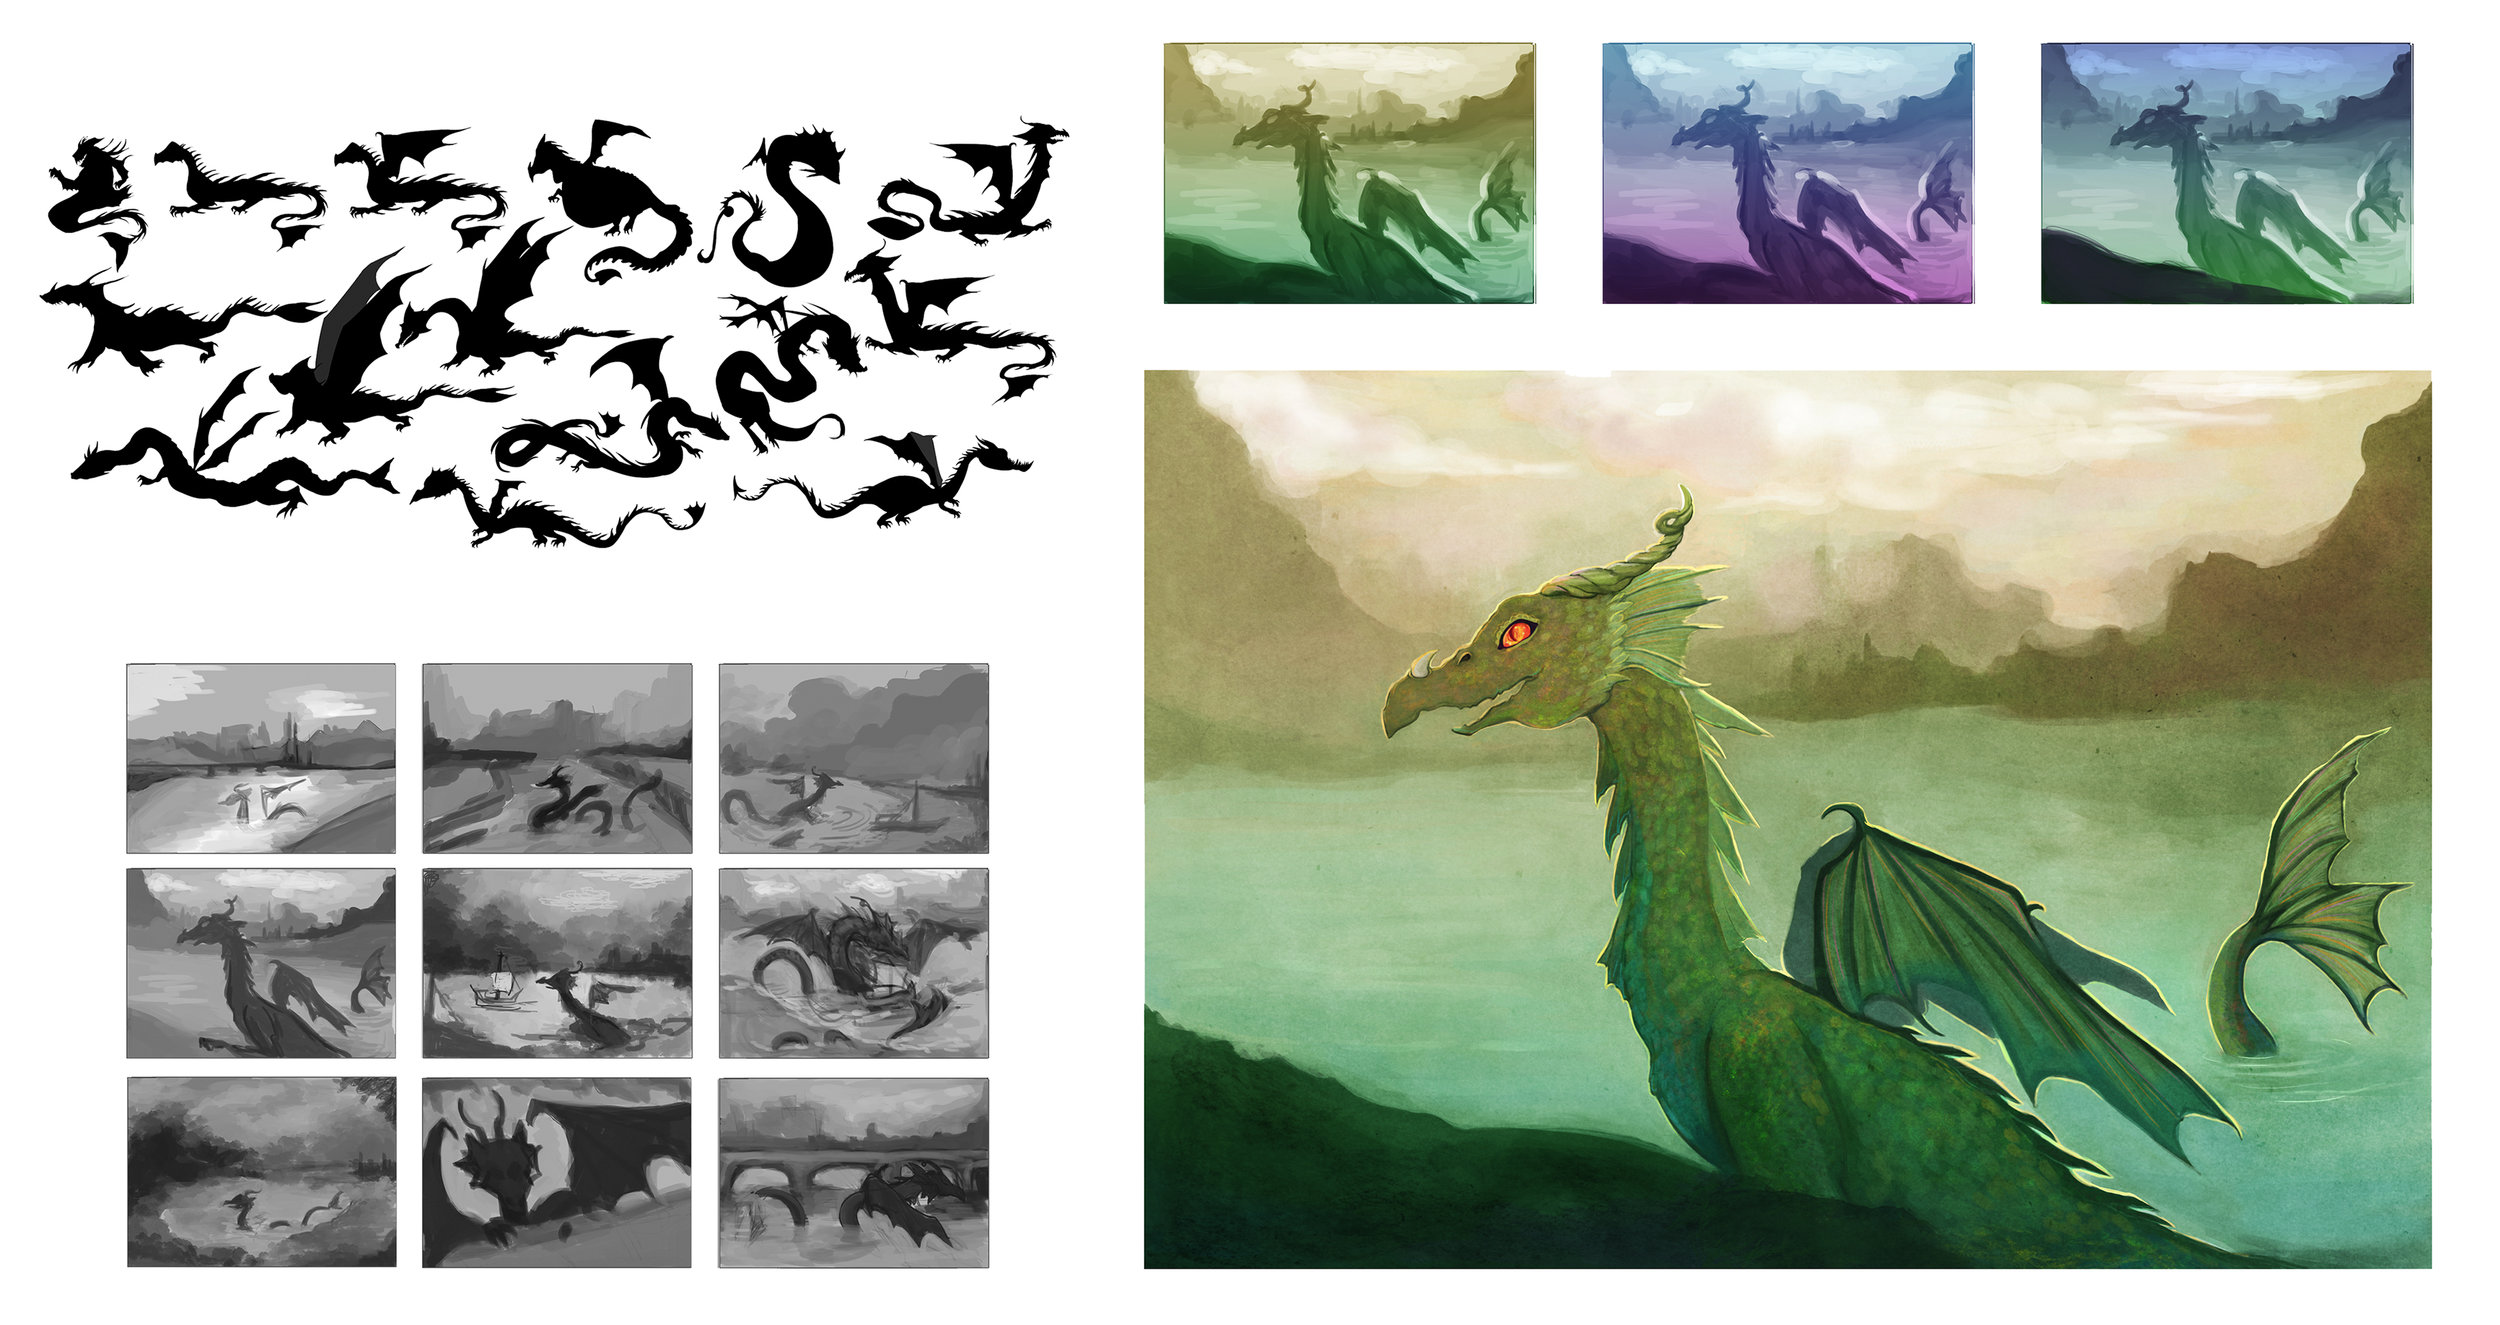 Creature Design - Sea Dragon